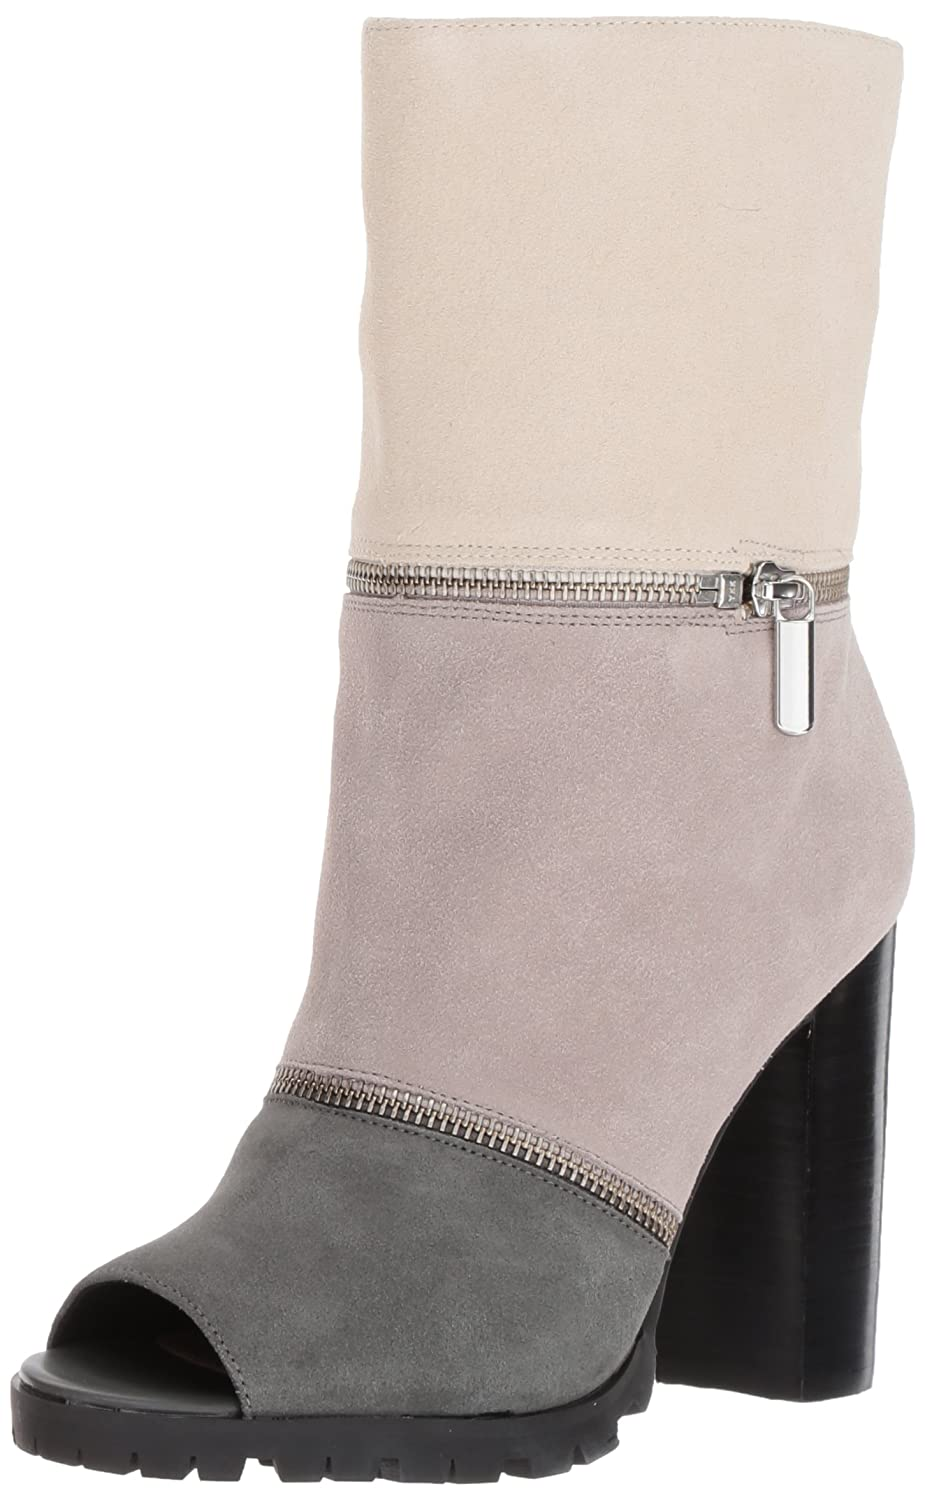 Katy Perry Women's The Evelyn Mid Calf Boot B06XDLQ3H3 11 B(M) US|Charcoal